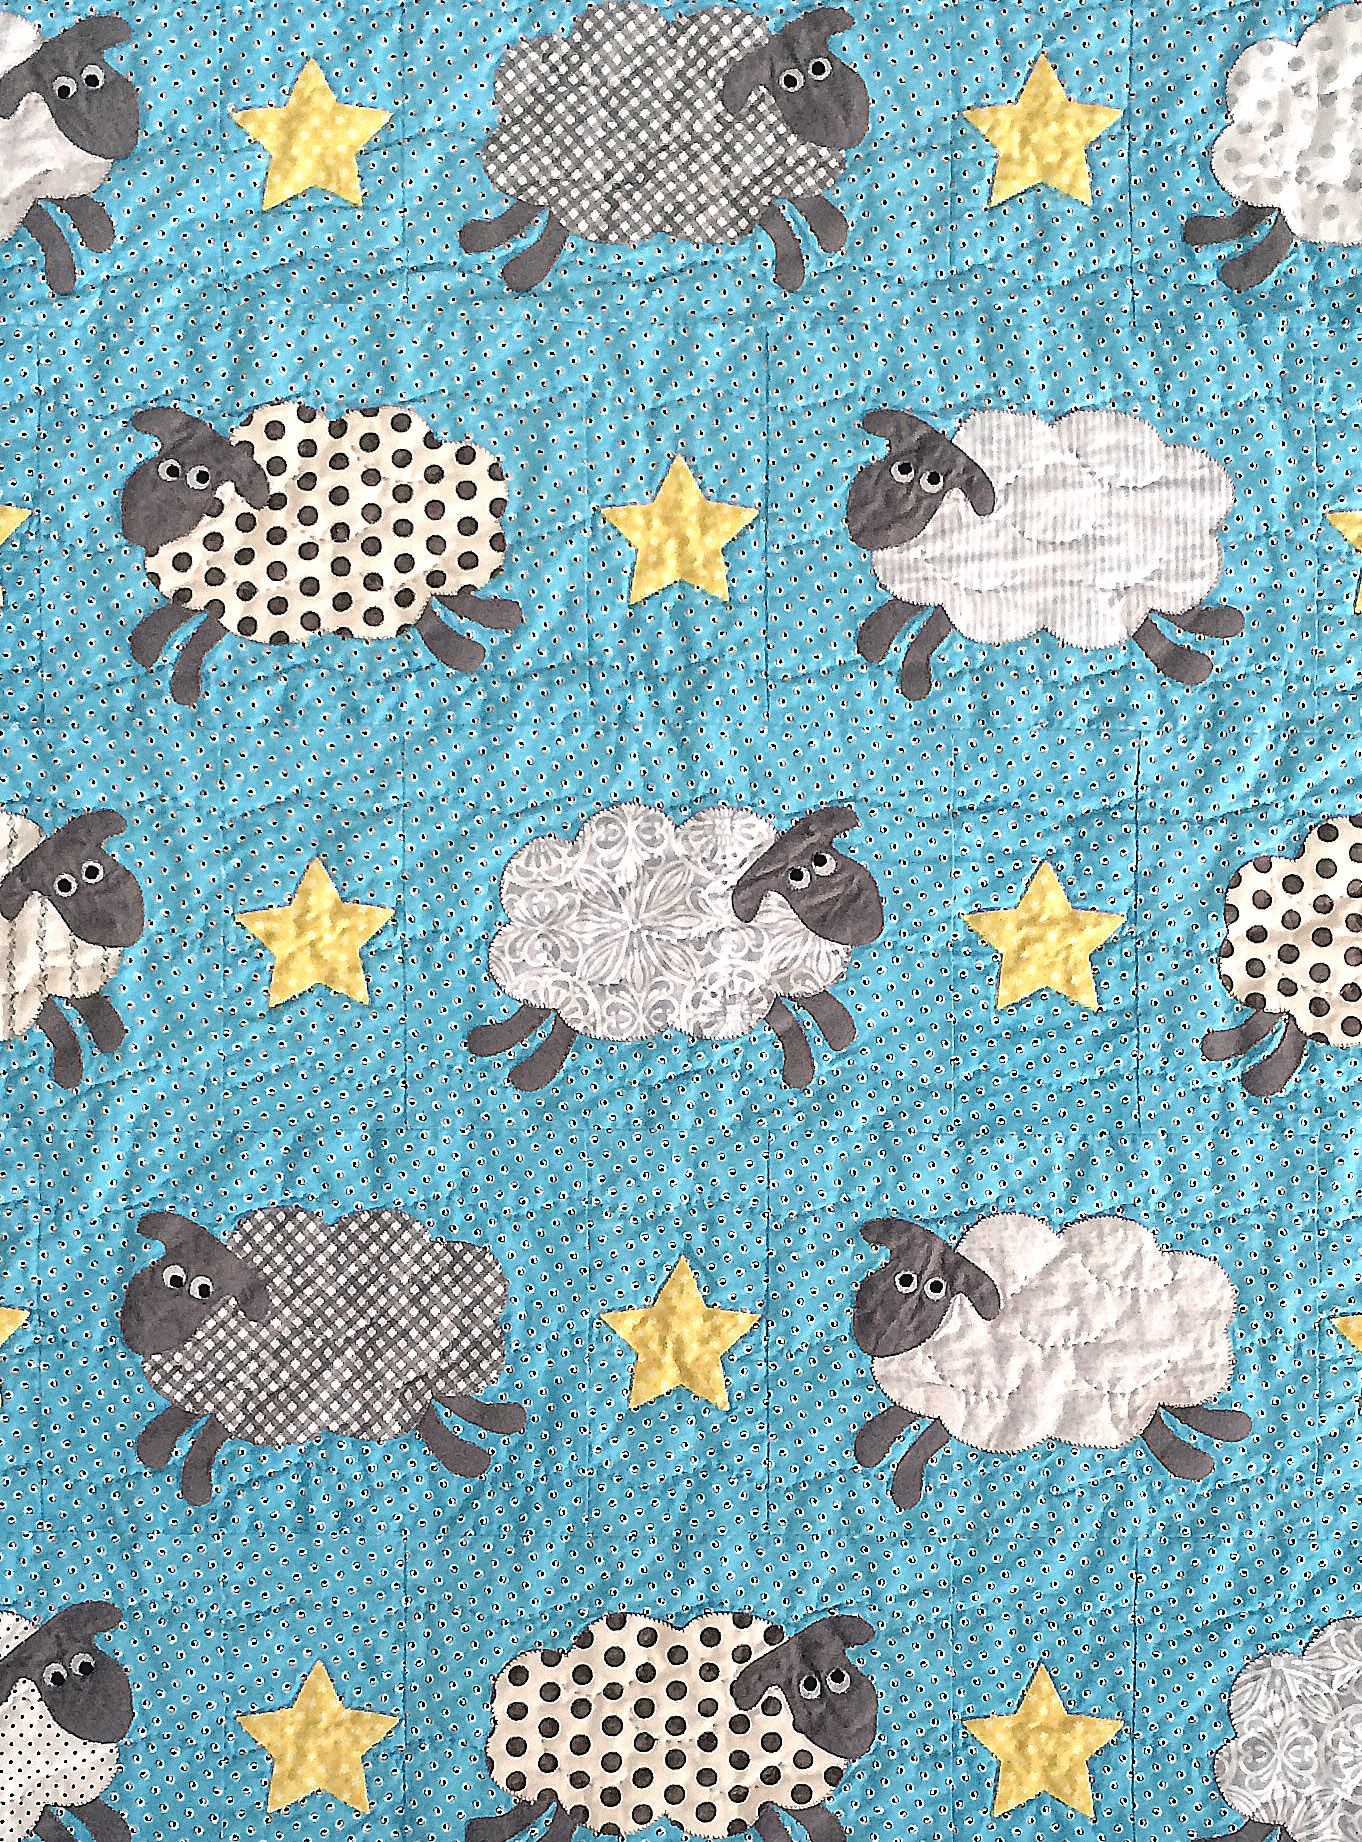 Counting Sheep Quilt Pattern By Black Mountain Needleworks